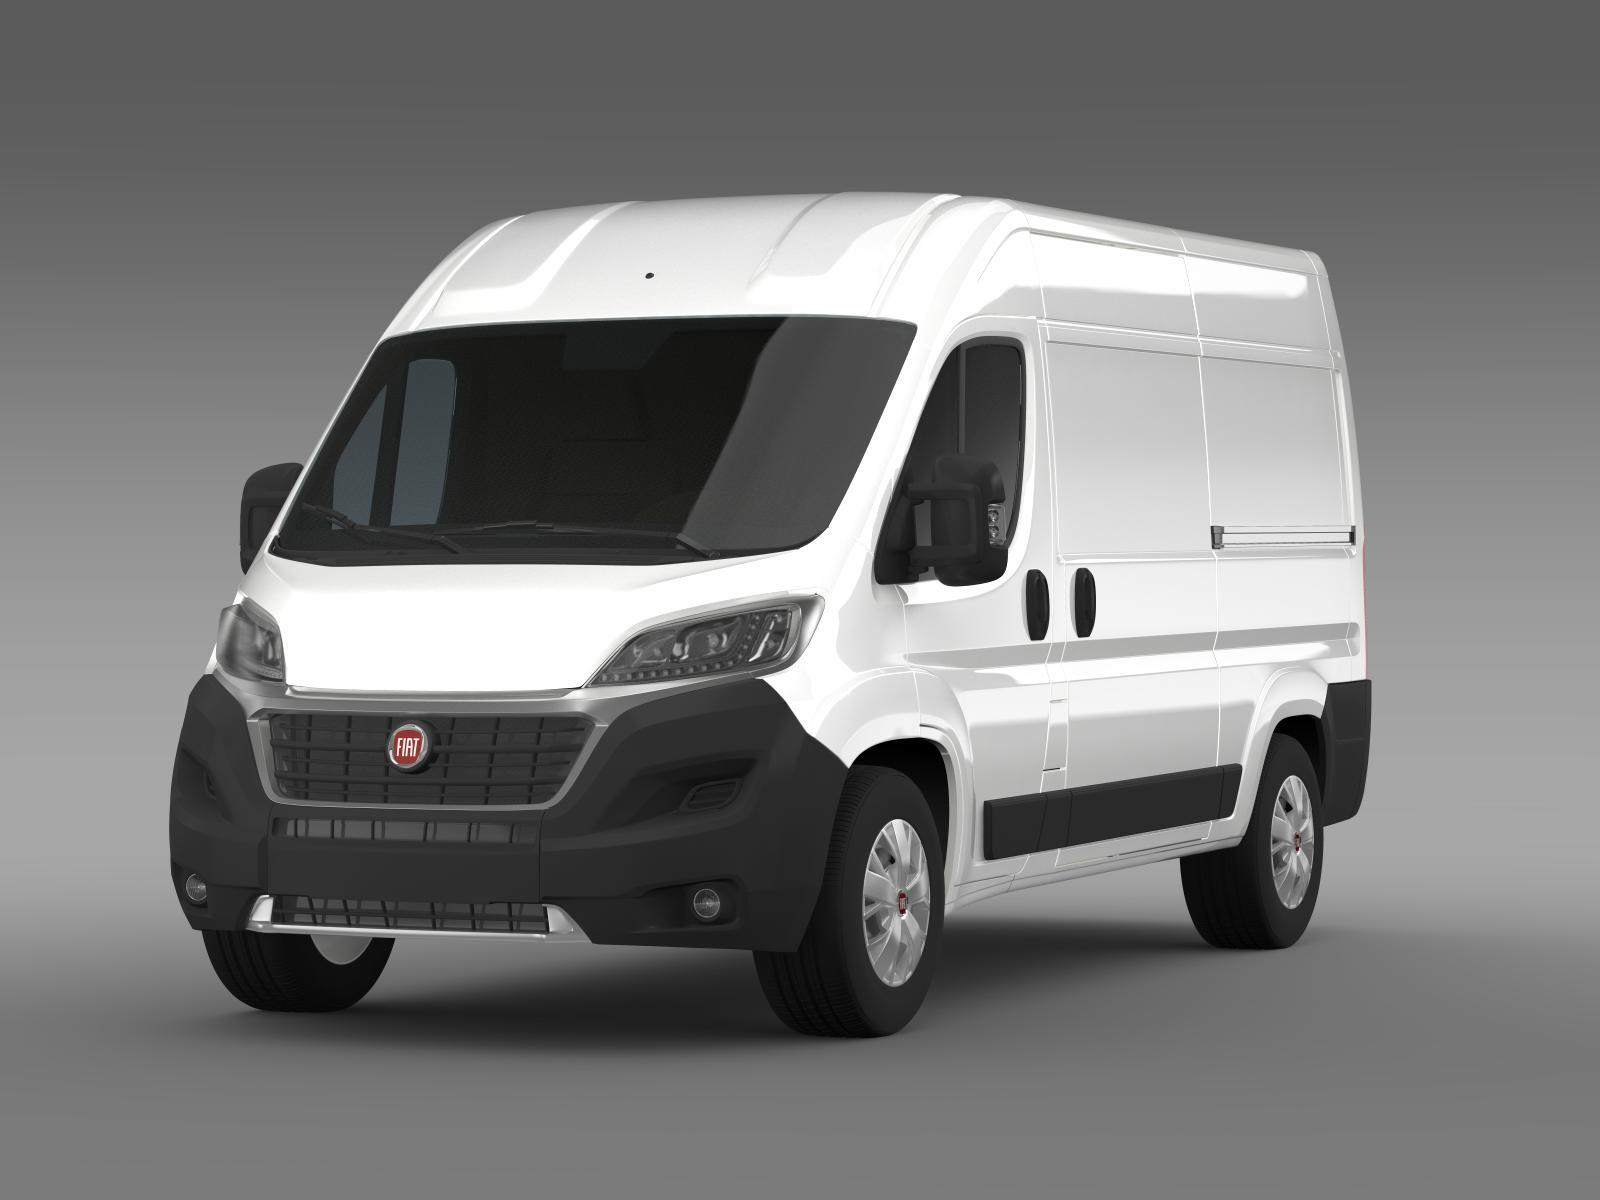 fiat ducato van l2h2 2015 by creator 3d 3docean. Black Bedroom Furniture Sets. Home Design Ideas